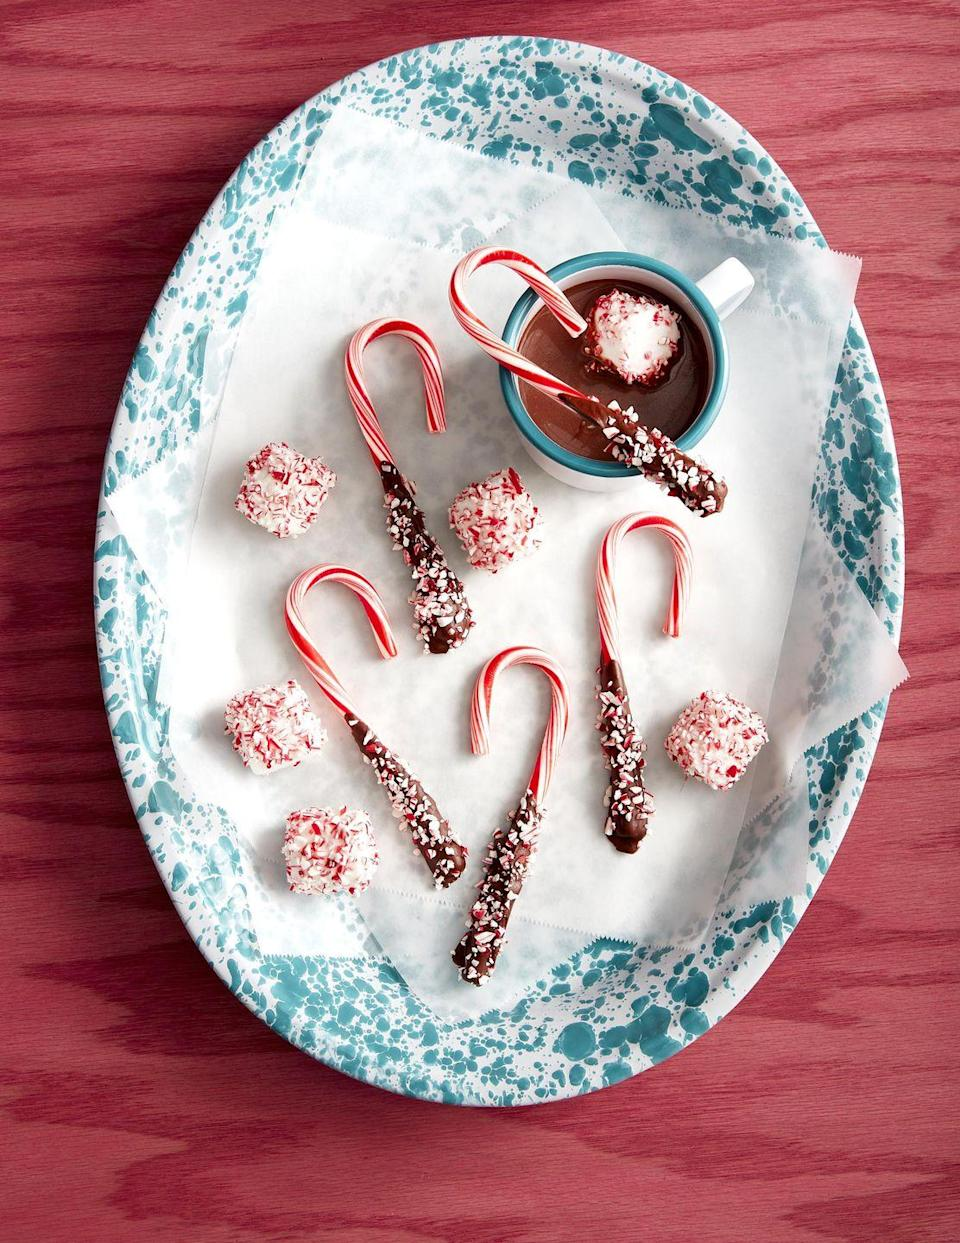 <p>Simple and tasty, these easy DIY peppermint Hot Chocolate Stirrers will get you through plenty of chilly days.</p><p><strong>To make</strong>: Dip ends of candy cane in melted semisweet chocolate. Sprinkle with crushed candy canes: place on a parchment paper-lined plate, and chill. Lightly mist large marshmallows with water. Sprinkle with crushed candy canes.</p>